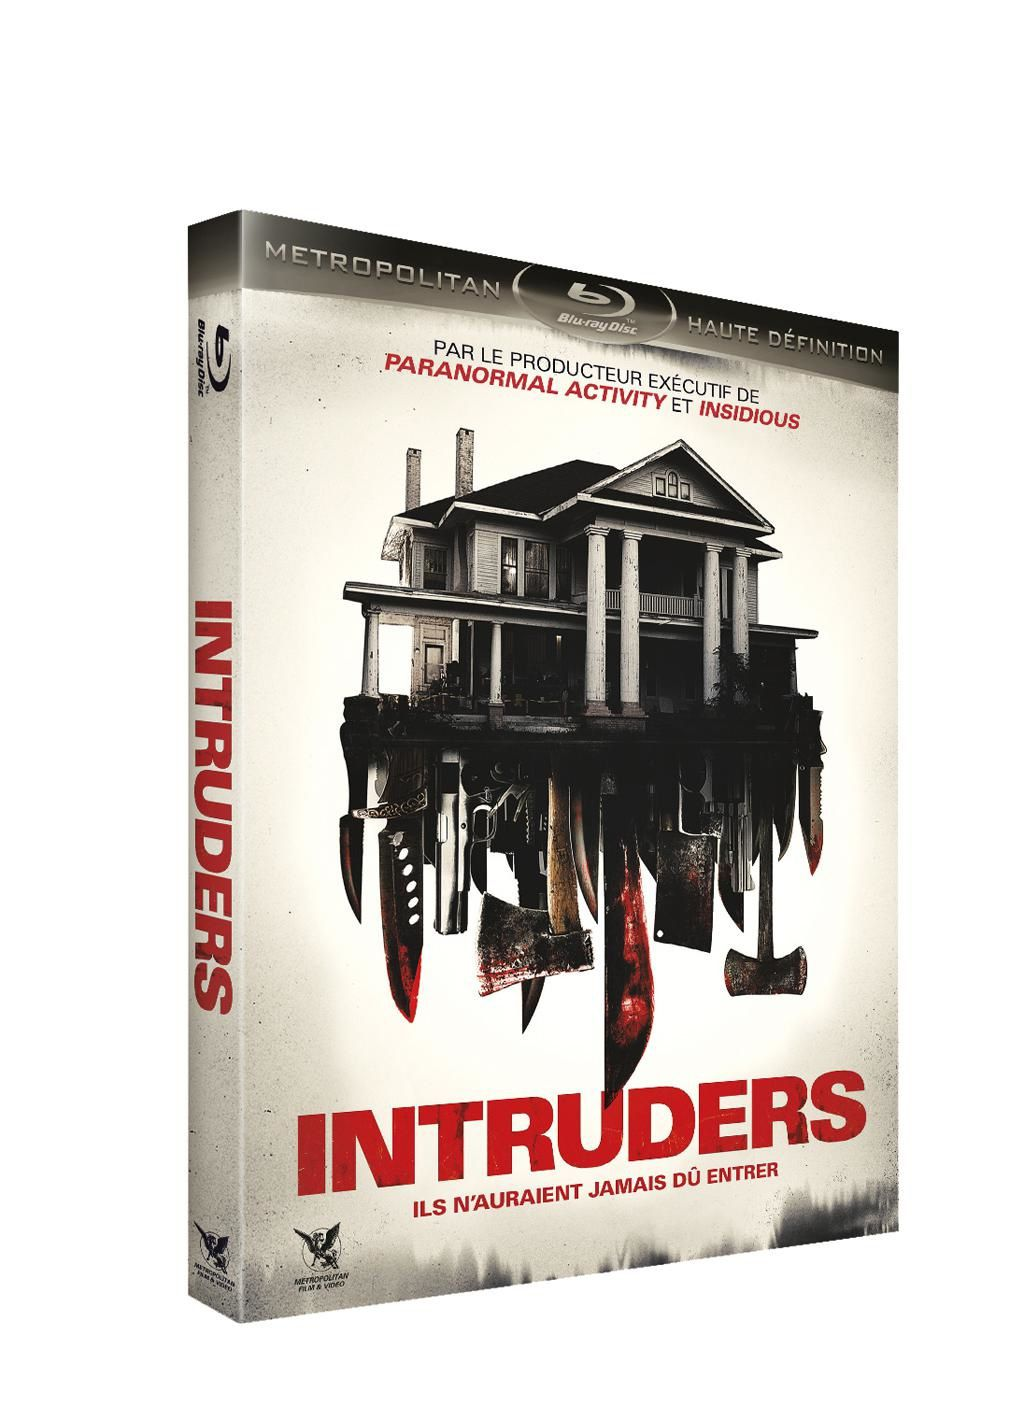 Intruders (BANDE ANNONCE VOST) en Blu-ray, DVD et VOD le 20 avril 2016 avec Beth Riesgraf, Rory Culkin, Martin Starr